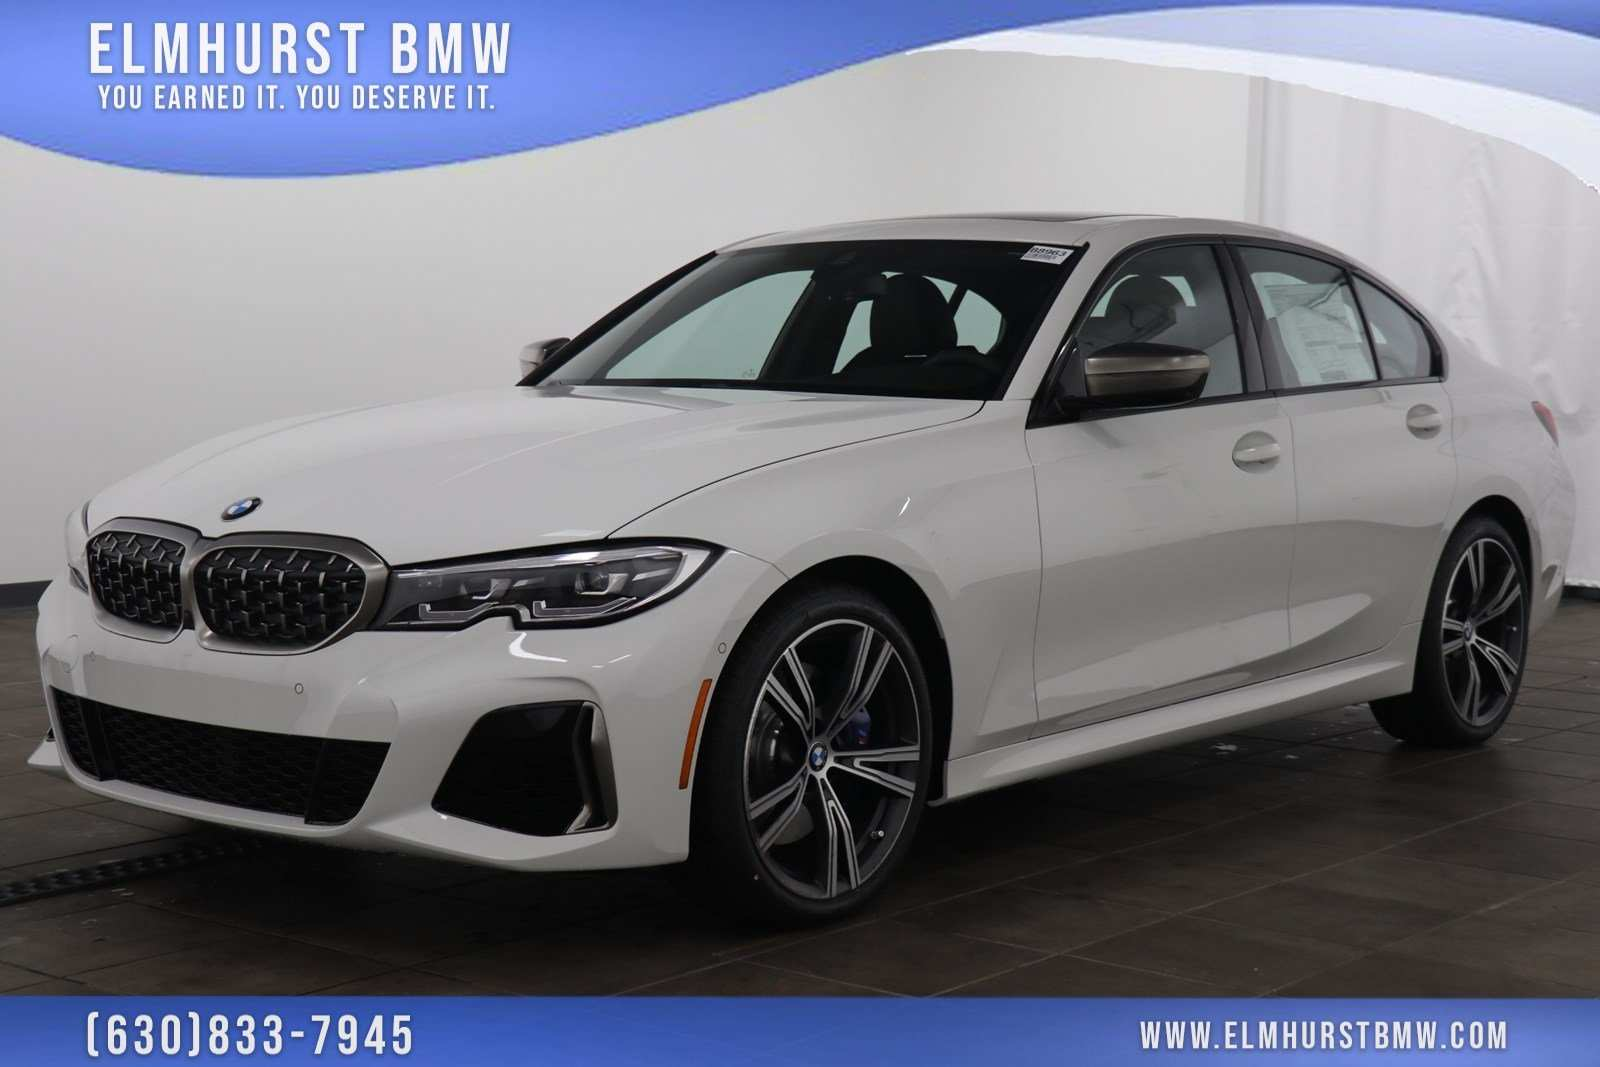 44 The Best 2020 BMW 3 Series Picture